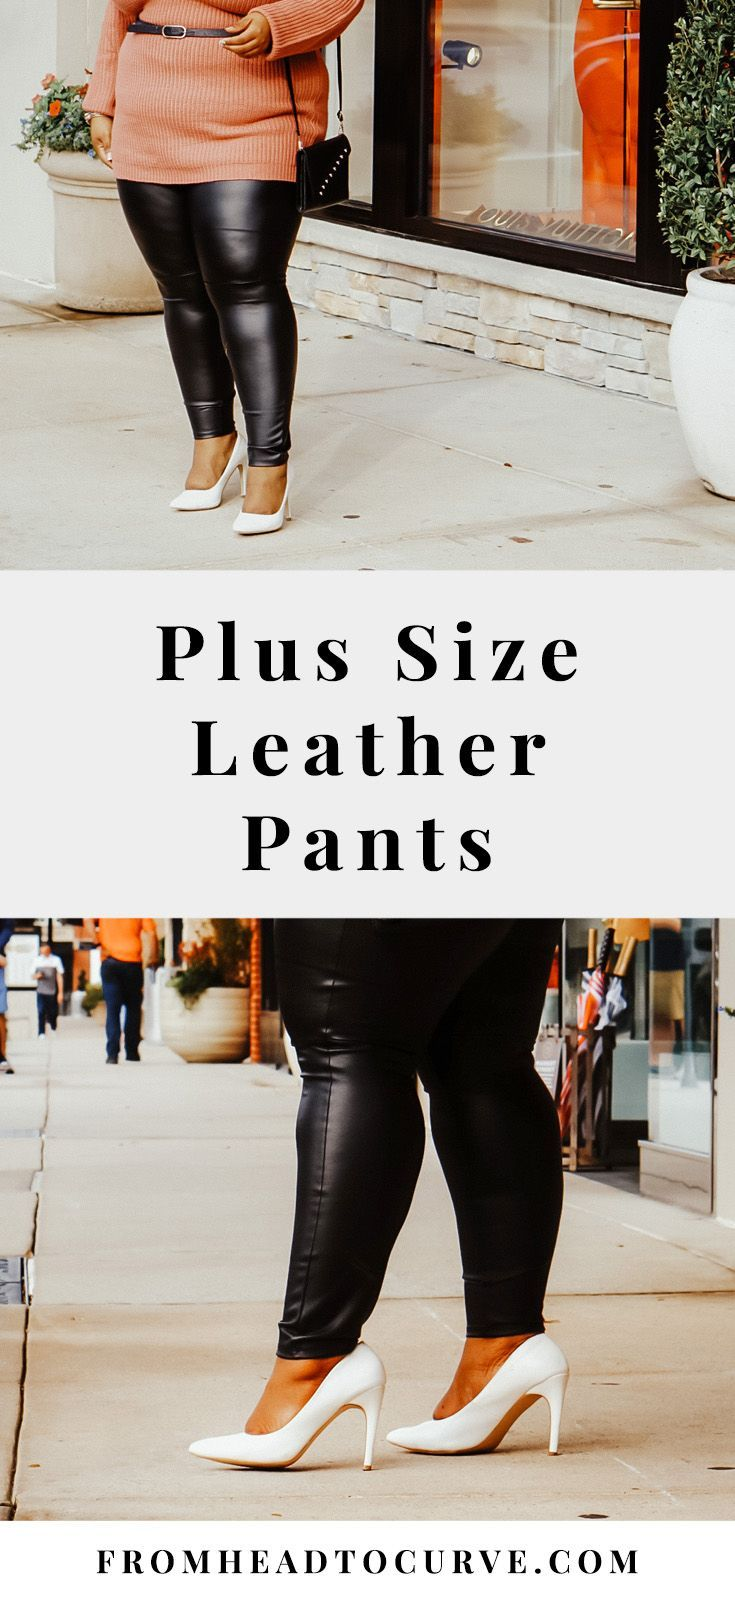 For the first time in life, I tried faux leather leggings and I must say that I have fallen madly in love. I was always nervous to try faux leather pants mainly because I am plus size. Once I did, I was so happy I took the chance on these leggings.#pants #leather #leatherpants #fashion #style #plussize #curvy #plussizestyle #plussizefashion #outfits #ootd